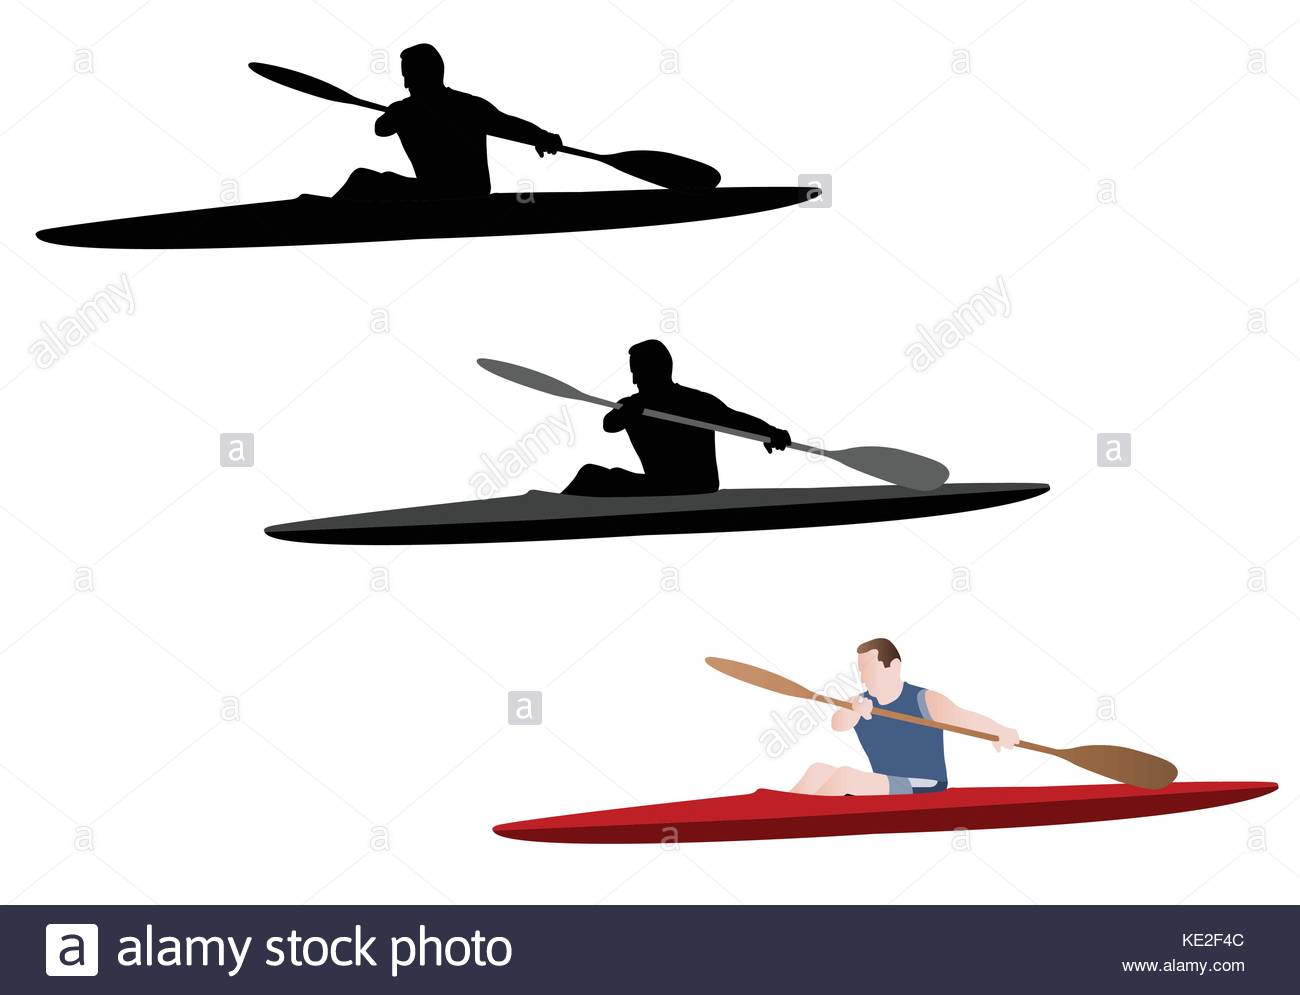 1300x995 Row Boat Stock Vector Images